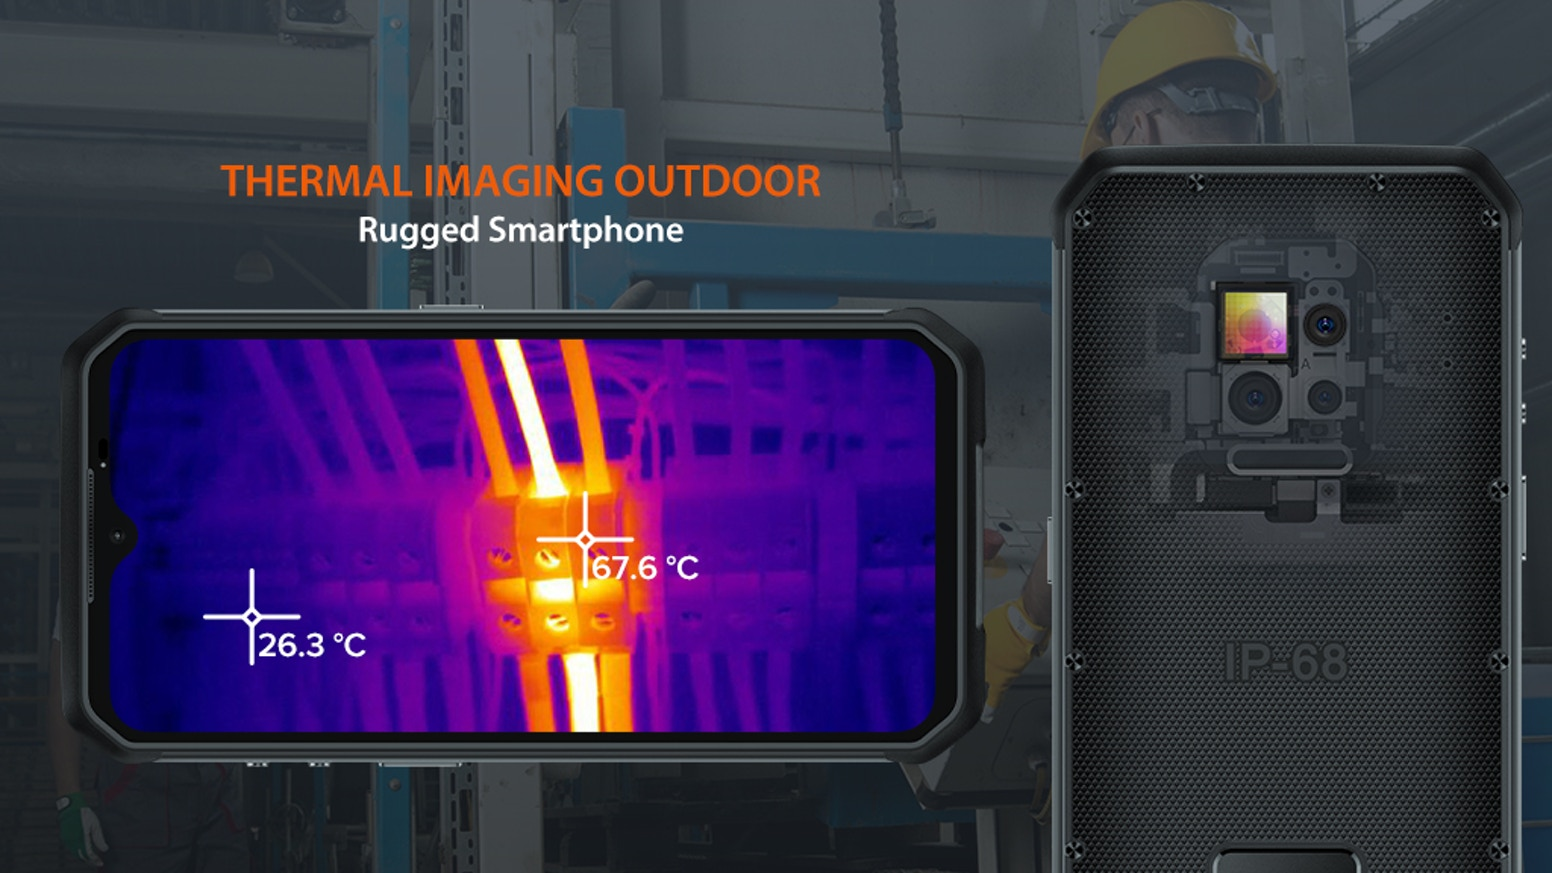 The first professional thermal imaging outdoor rugged smartphone, IP68 protection grade, equipped with an industrial-grade endoscope.